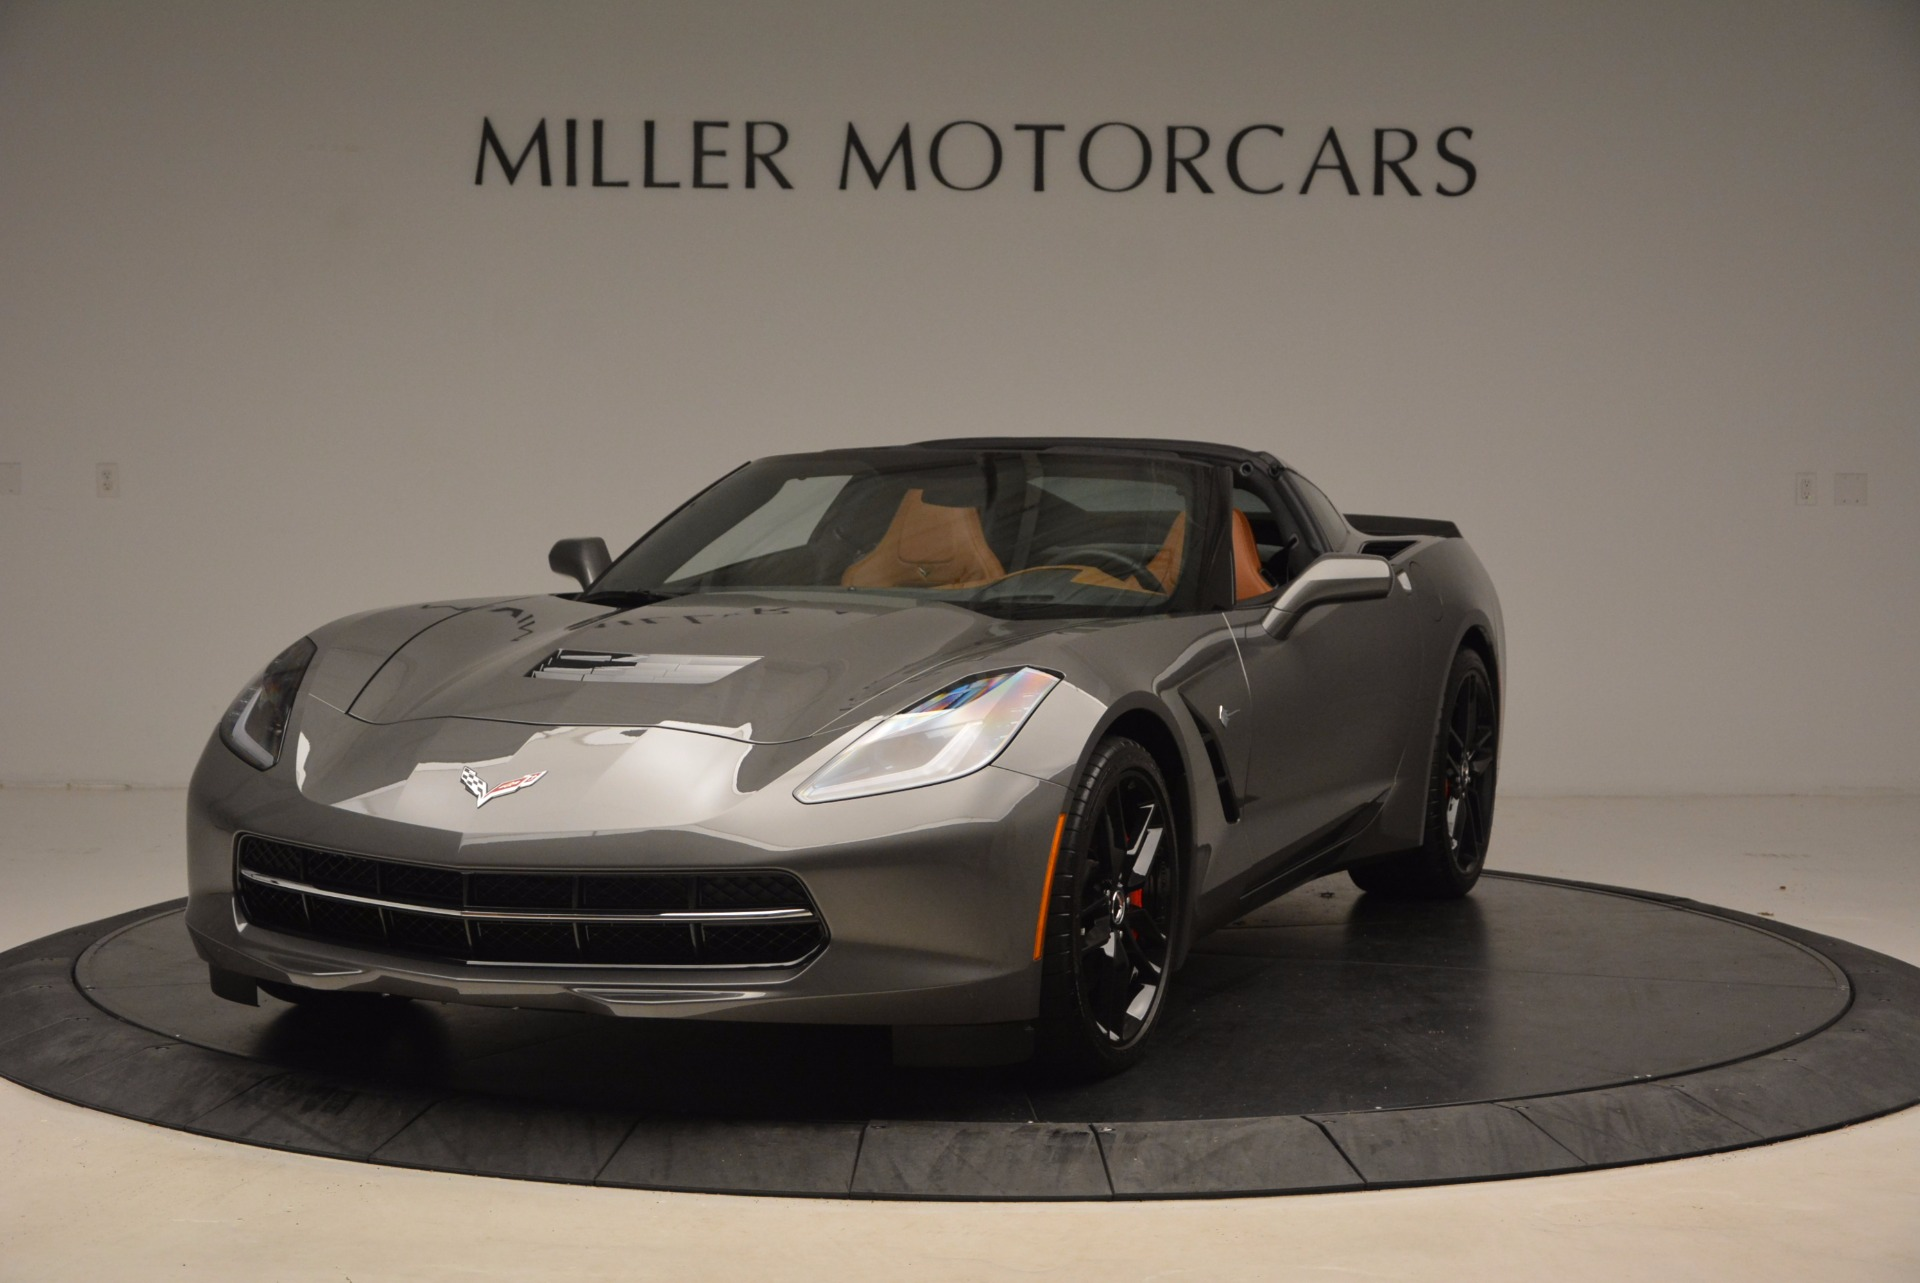 Used 2015 Chevrolet Corvette Stingray Z51 for sale Sold at McLaren Greenwich in Greenwich CT 06830 1